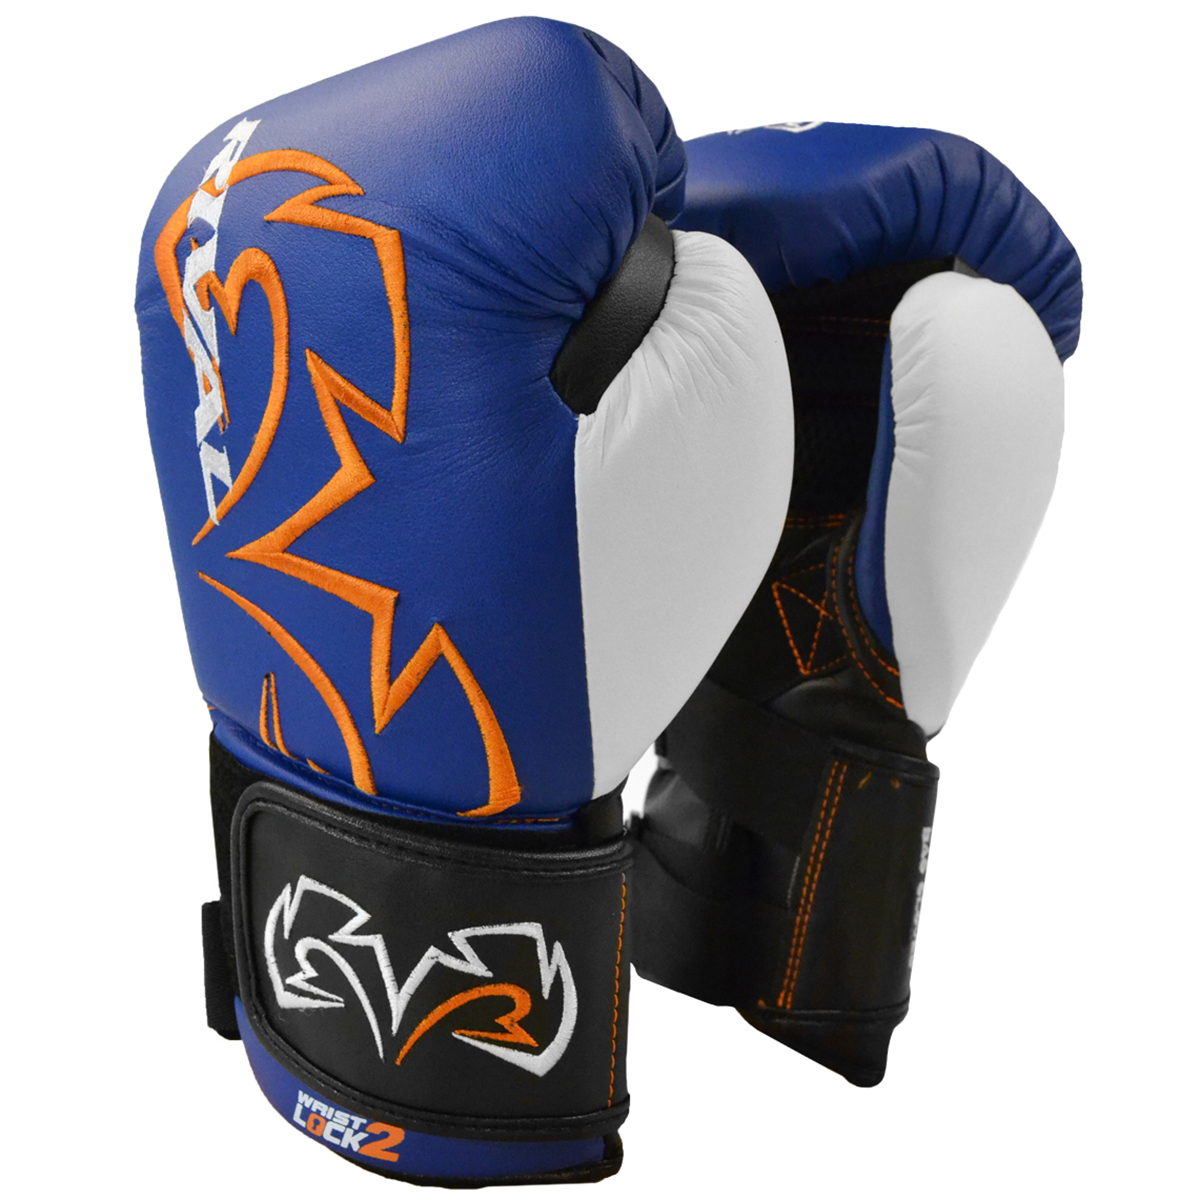 Evo Fitness Boxing Gloves Review: Rival Boxing Evolution Hook And Loop Bag Gloves